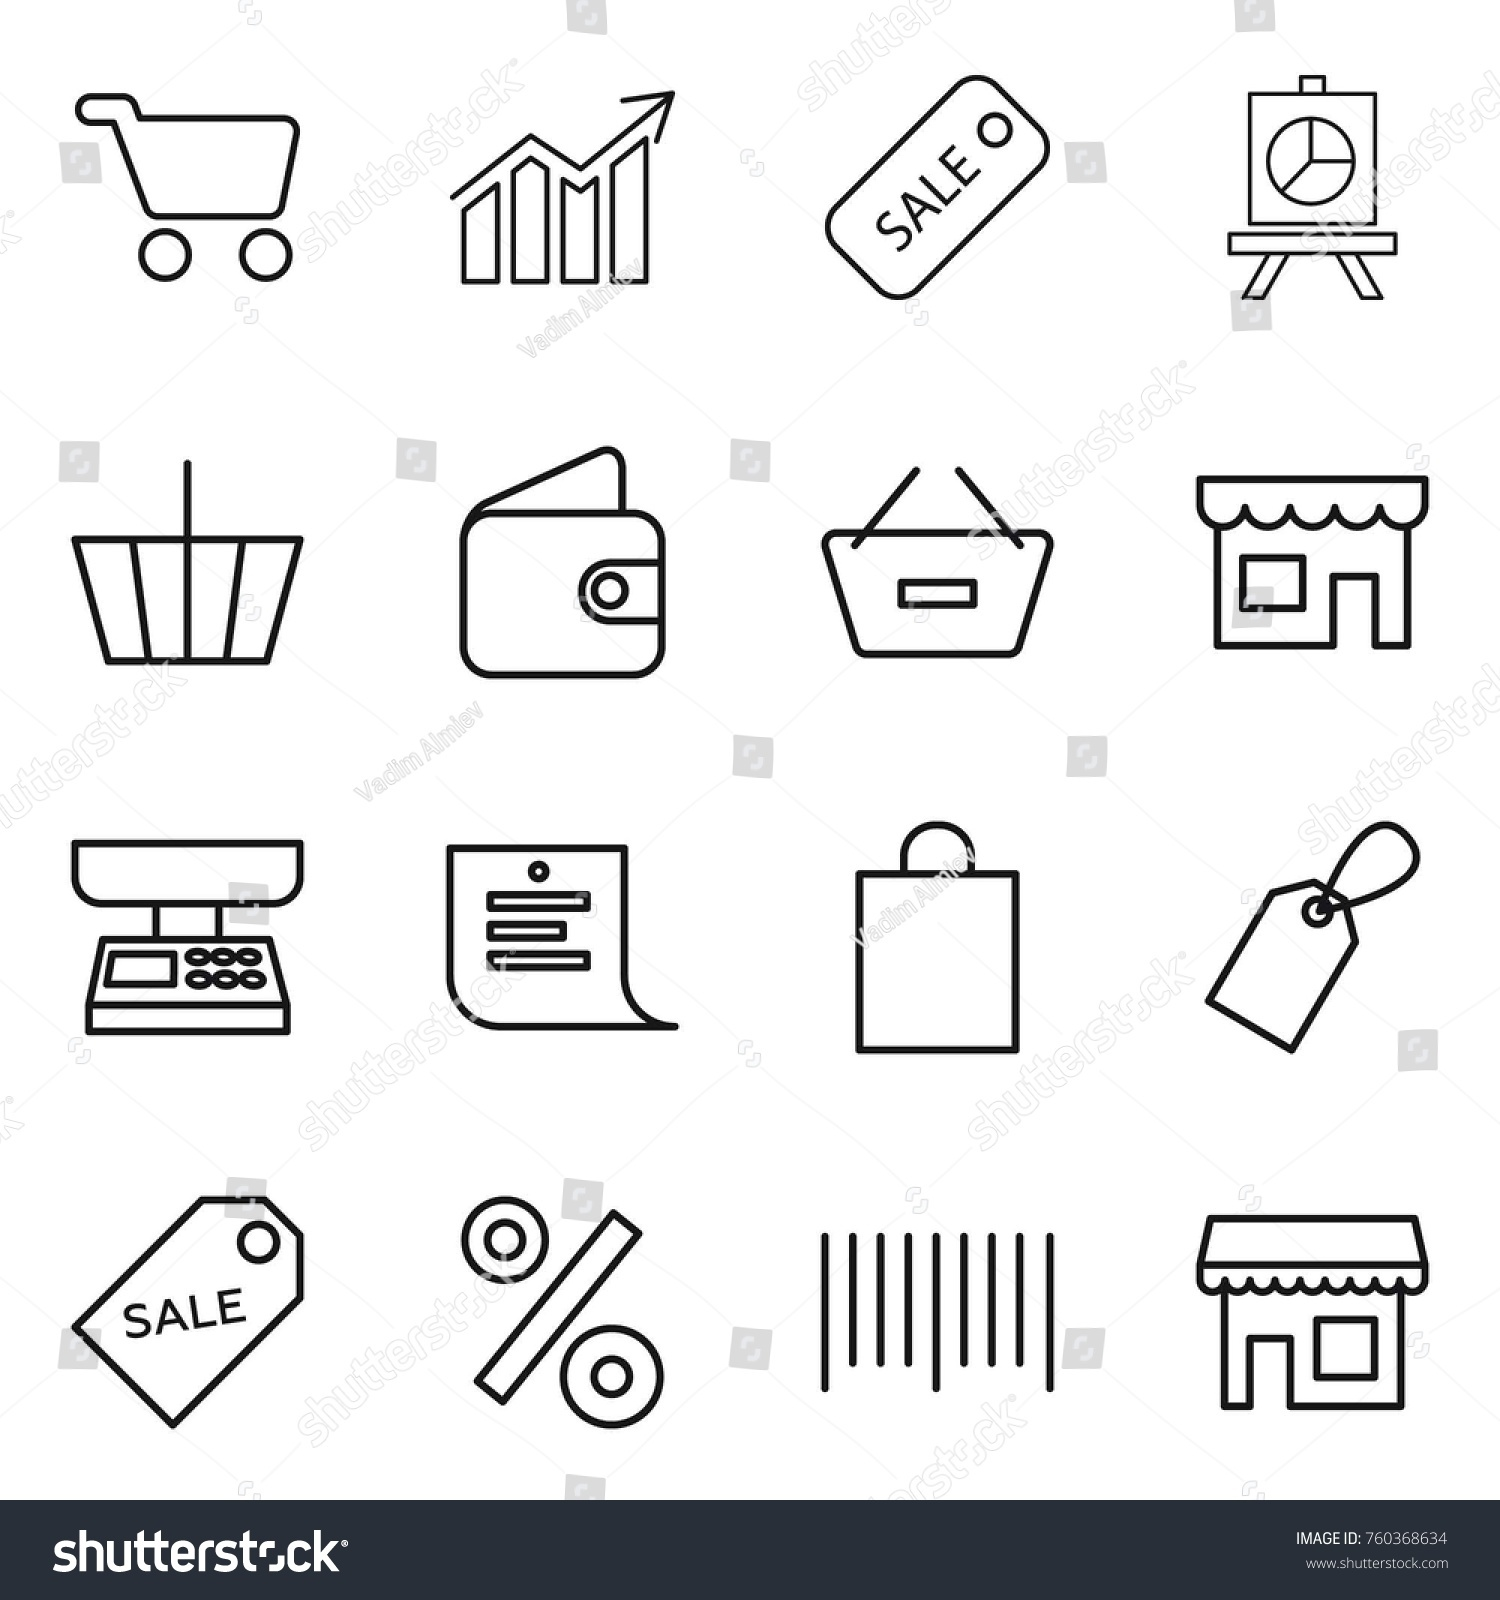 Thin Line Icon Set Cart Diagram Stock Vector Royalty Free Shopping Sale Presentation Basket Wallet